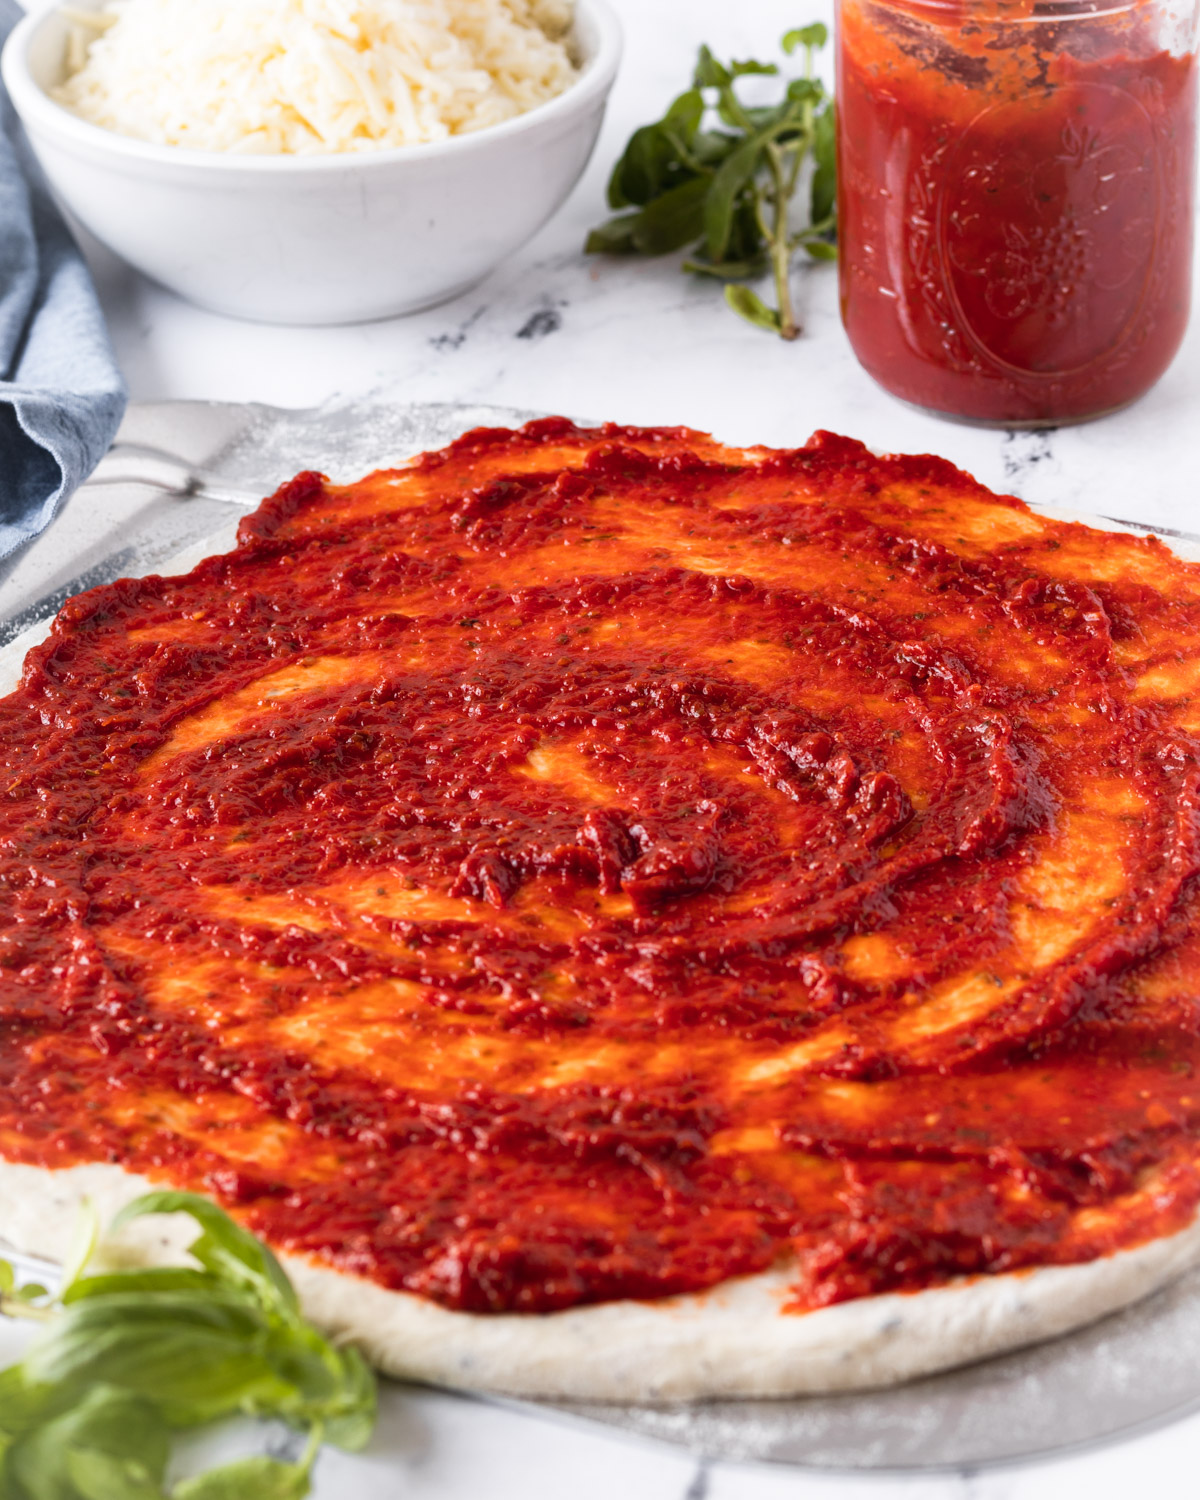 Pizza sauce spread thick on pizza dough, with a jar of sauce and a bowl of shredded cheese in the background.